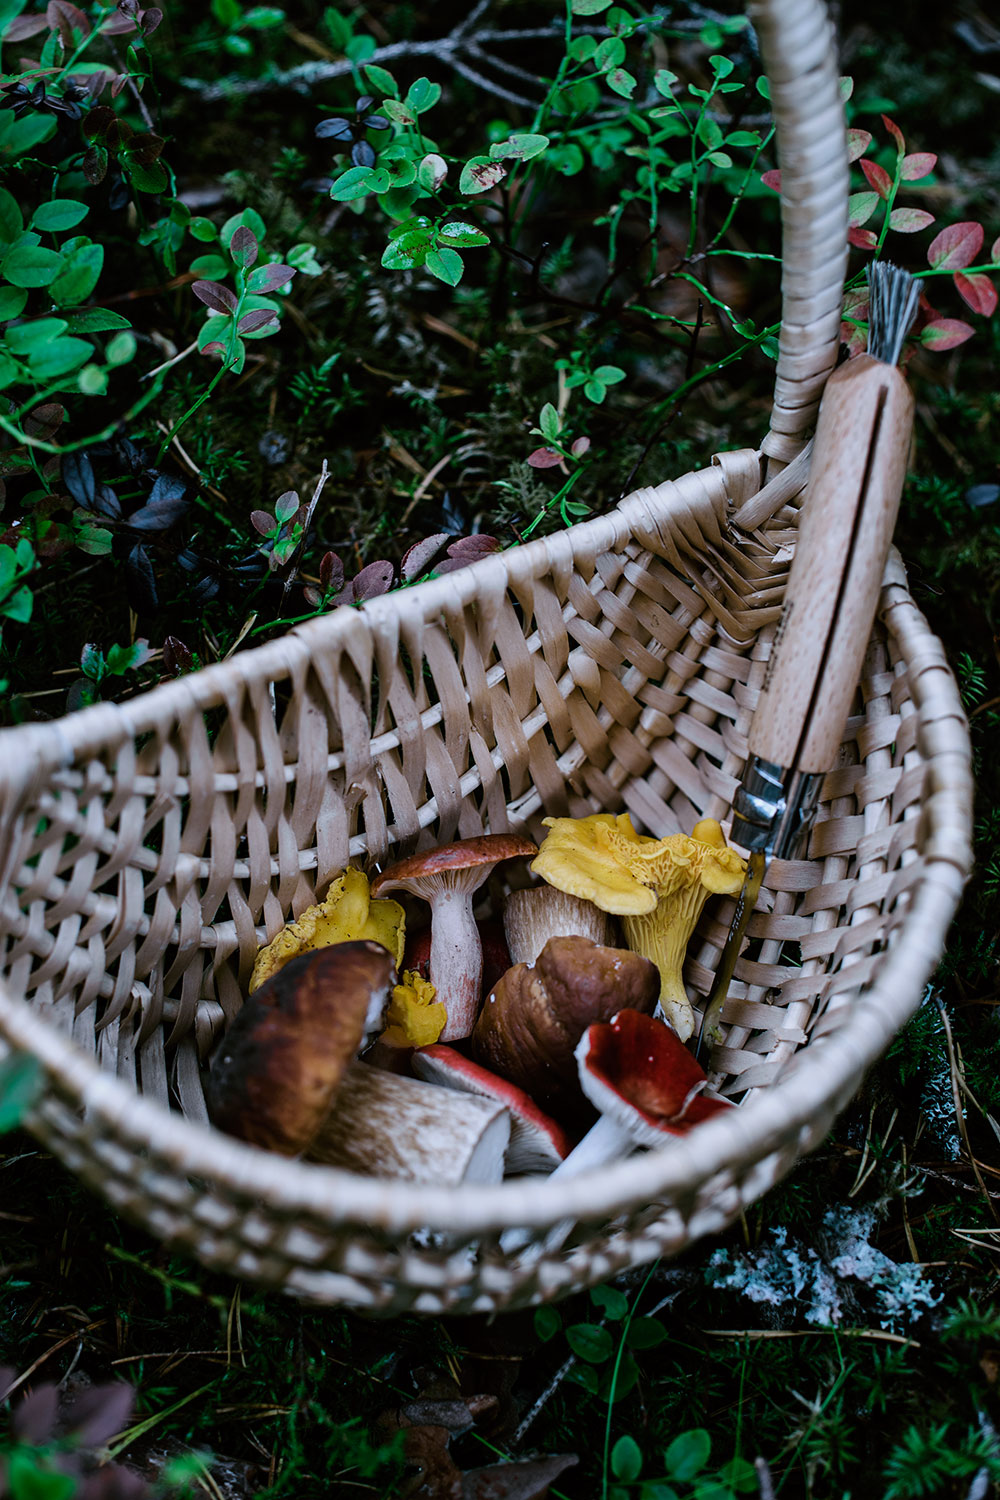 A basket full of mushrooms found in the forest